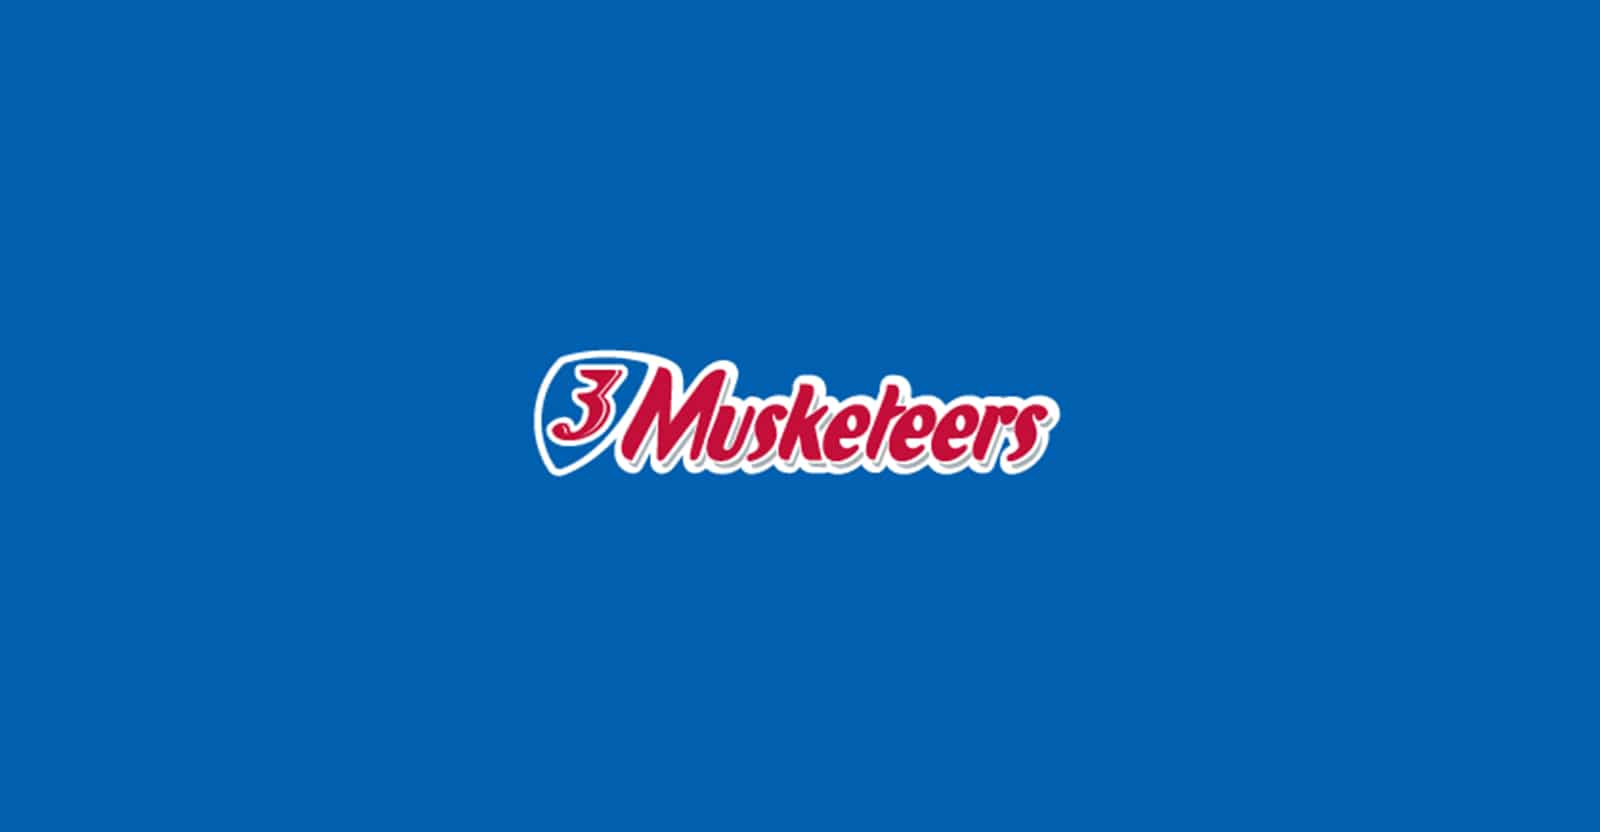 are 3 musketeers gluten-free